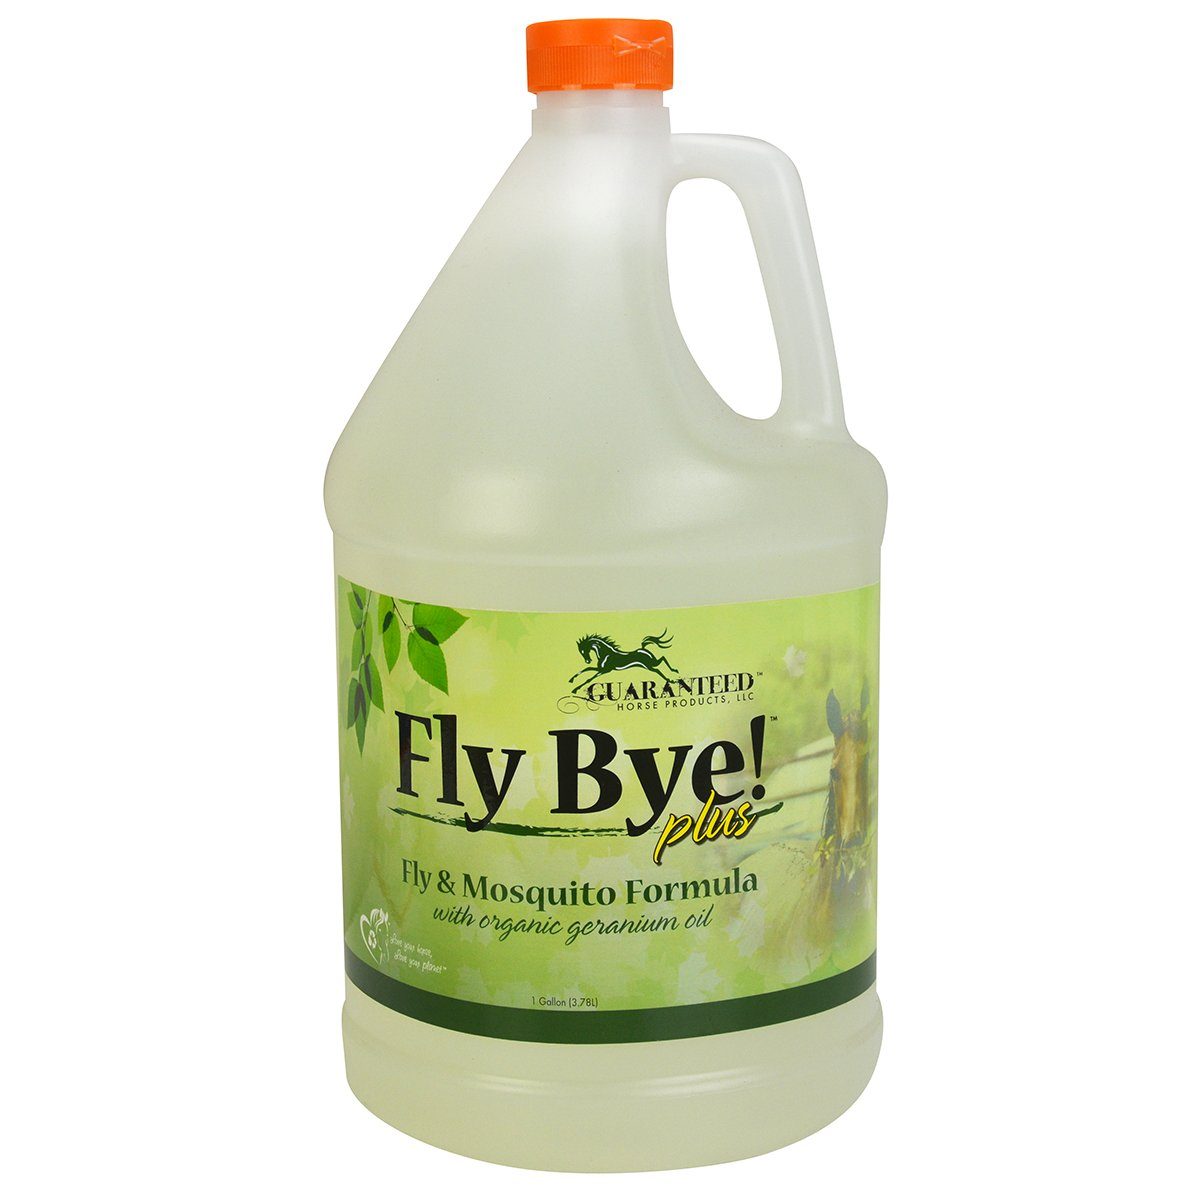 Guaranteed Horse Products Fly Bye Plus - Gallon